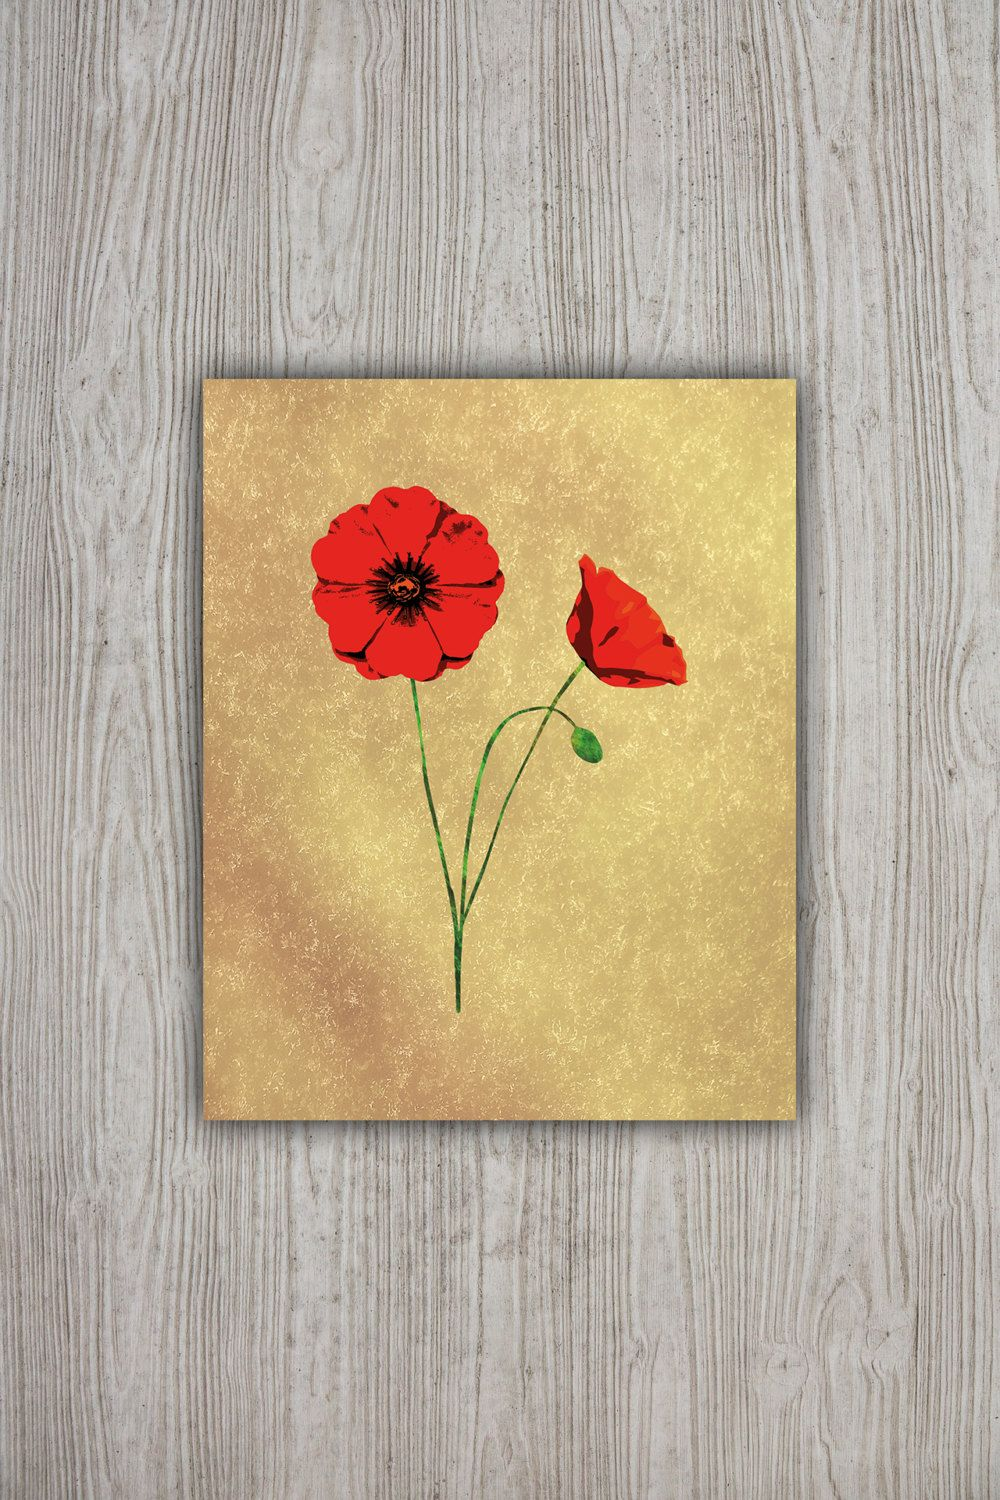 Red Poppies Wall Art Print 8x10, Floral Poster Flower Printable ...